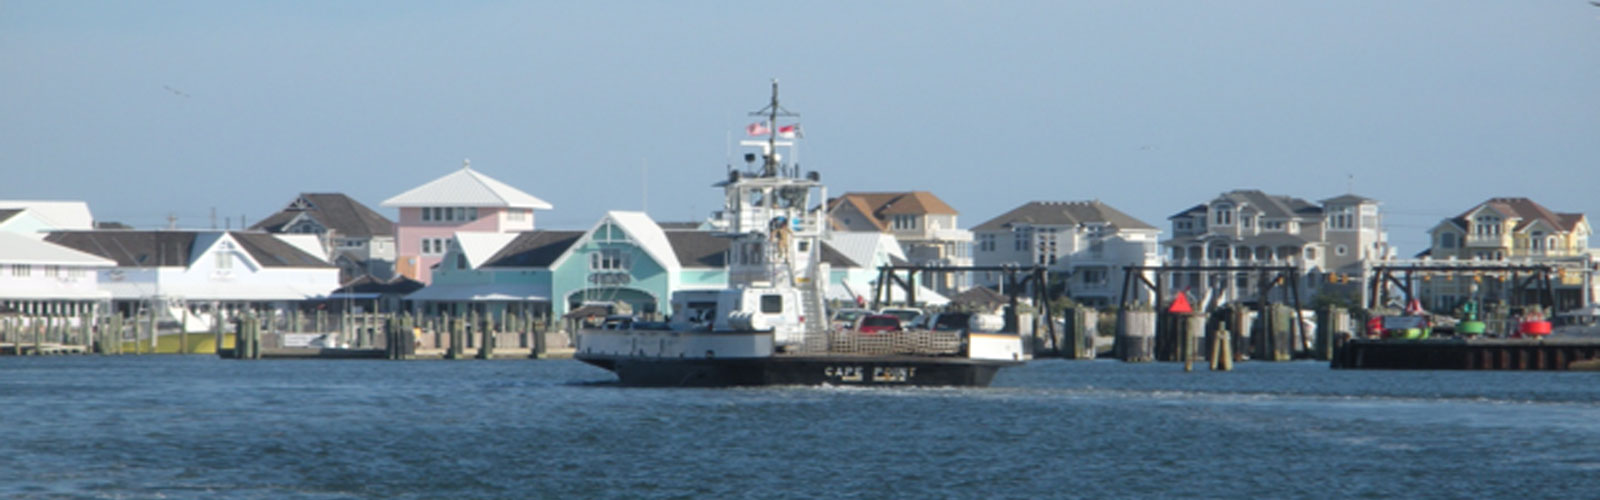 a boat on the water in the foreground, shore homes in the background